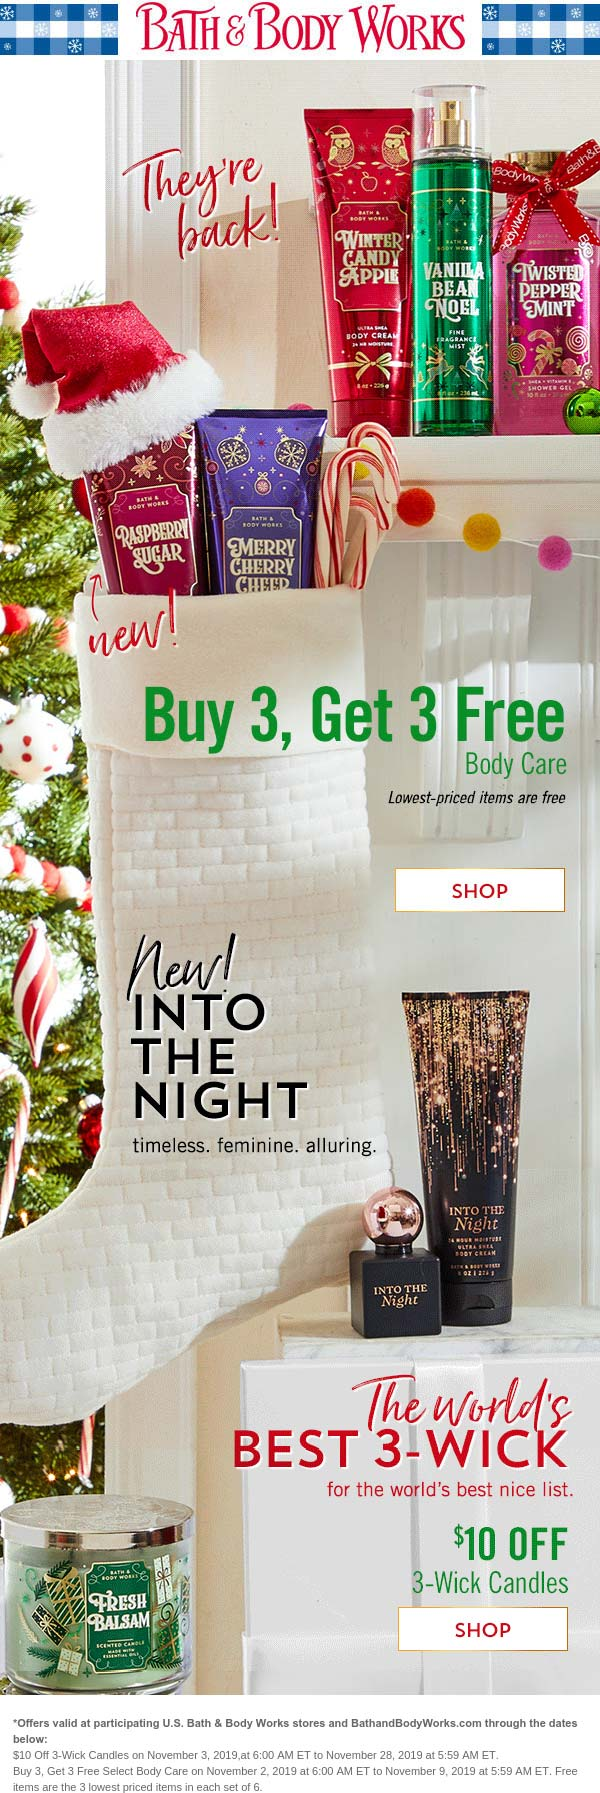 Bath & Body Works Coupon November 2019 6-for-3 on body care & $10 off 3-wick candles at Bath & Body Works, ditto online